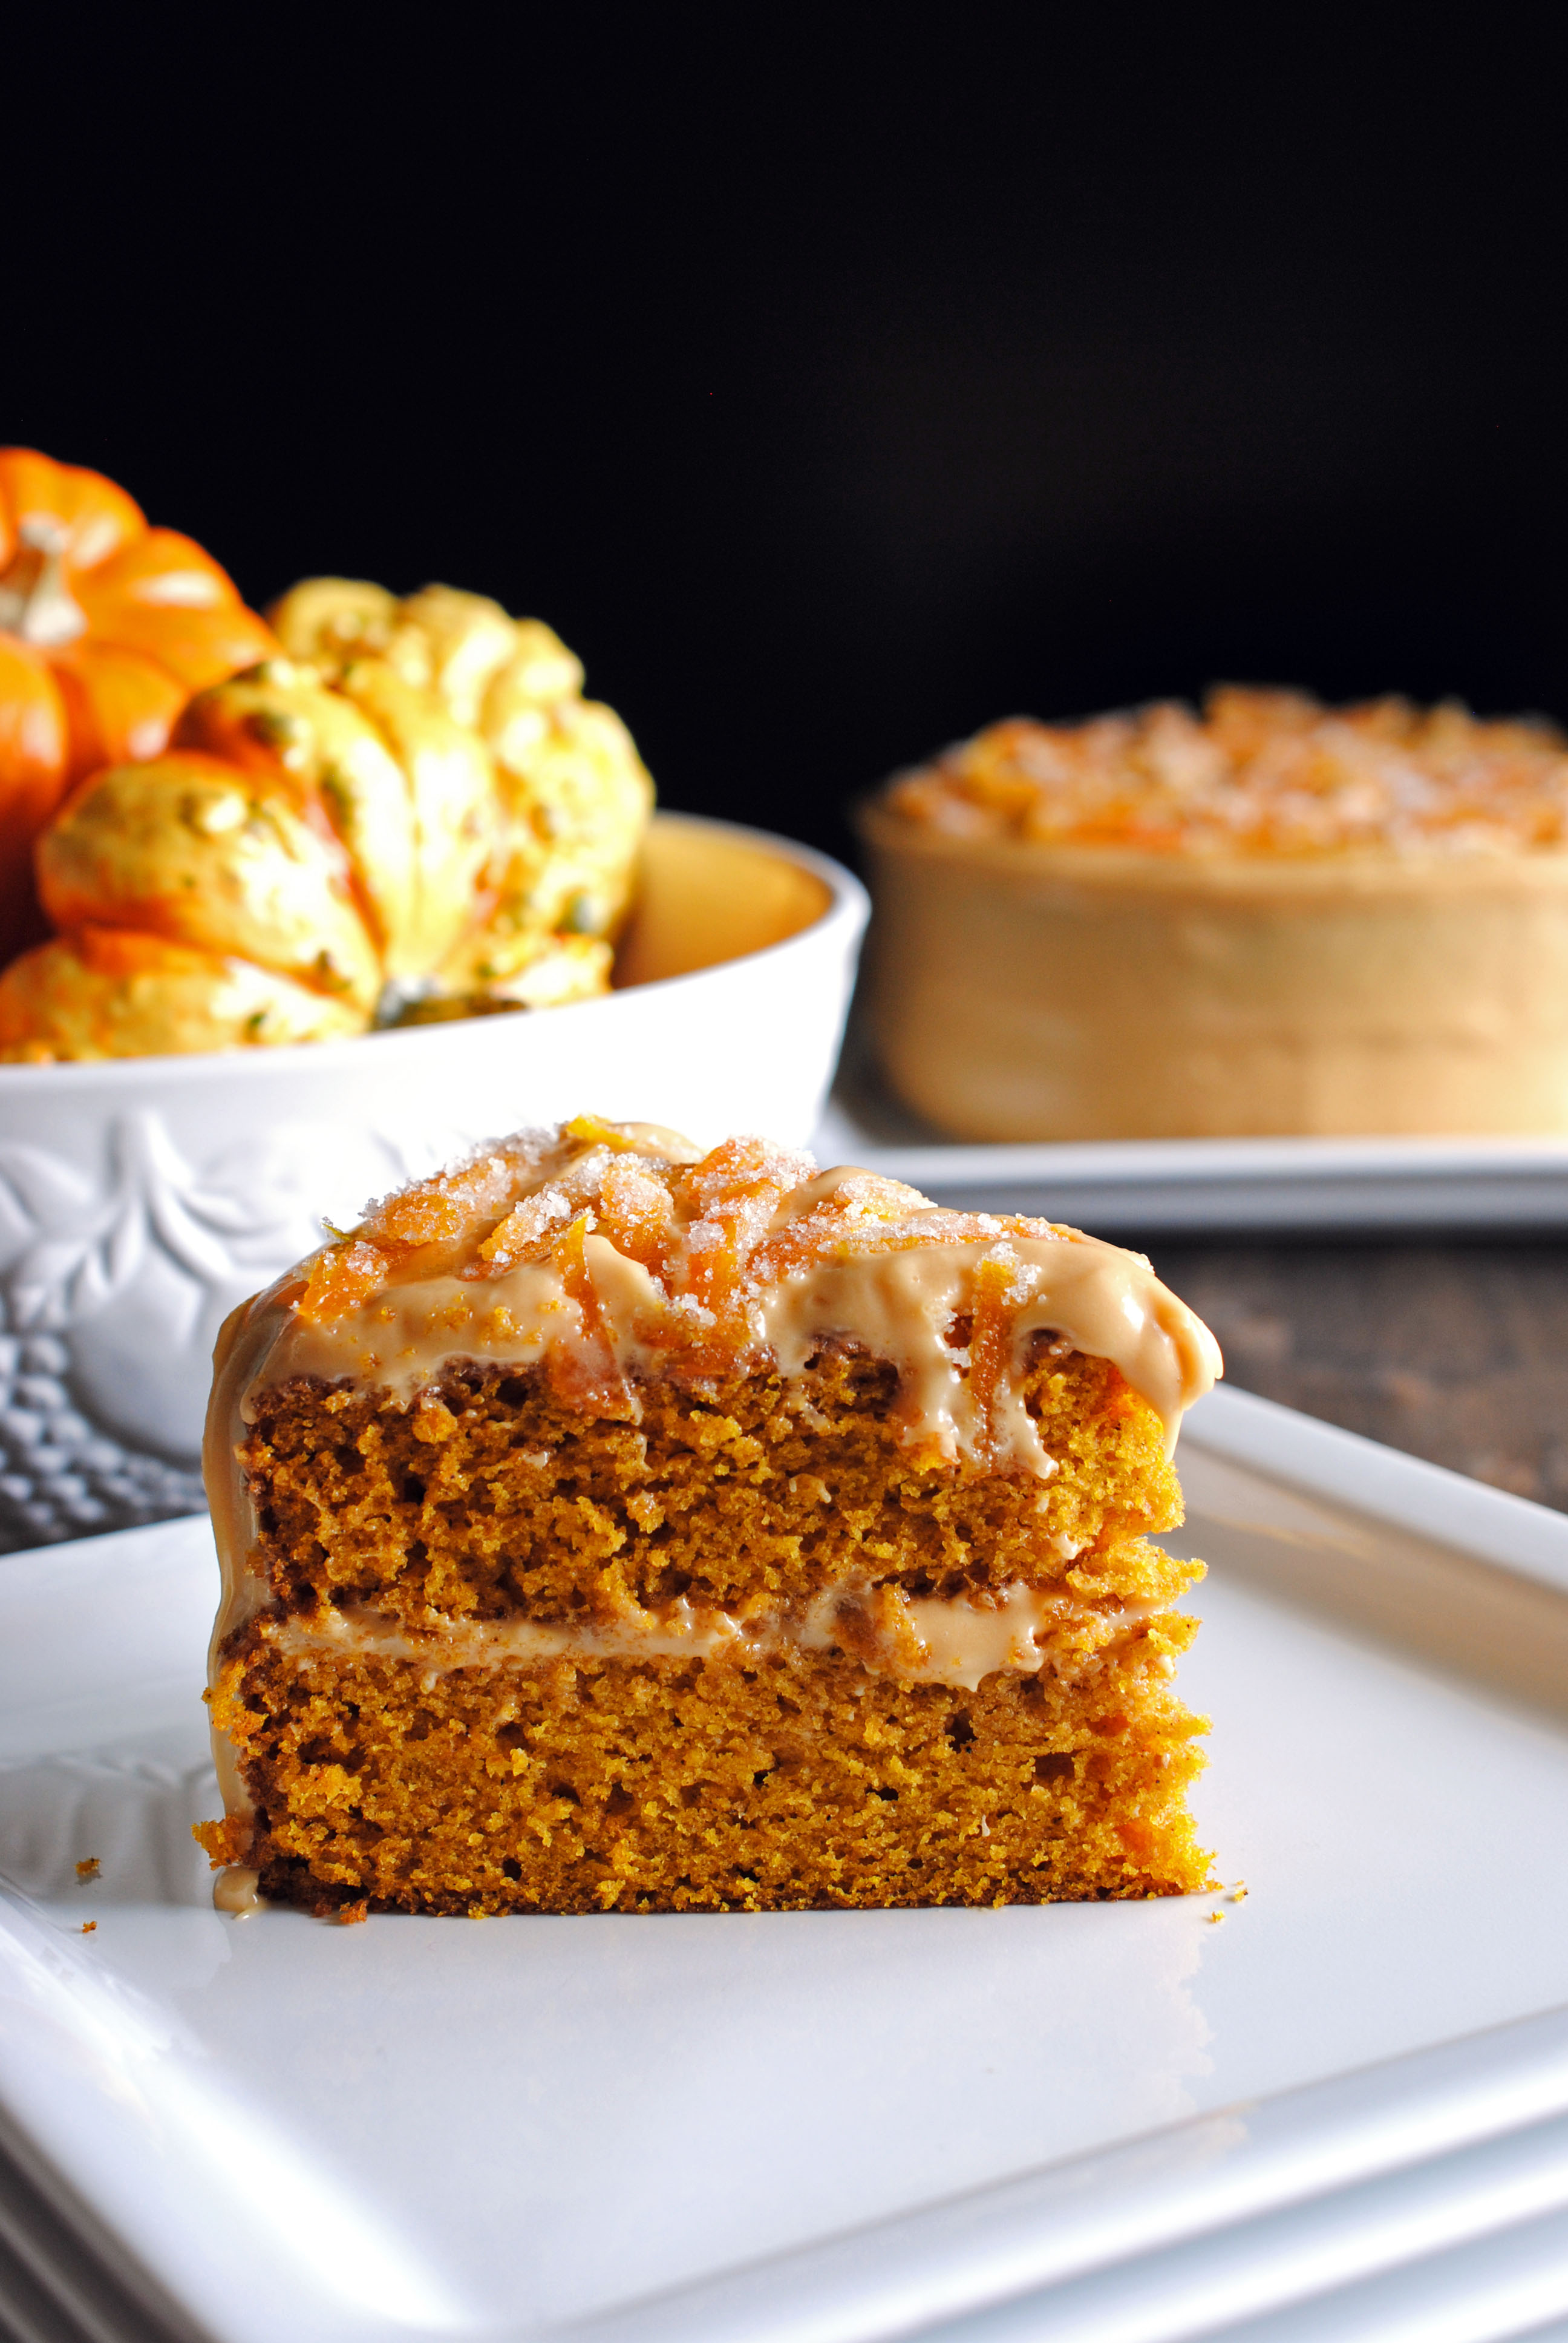 Pumpkin Spice Layer Cake With Caramel And Cream Cheese Frosting